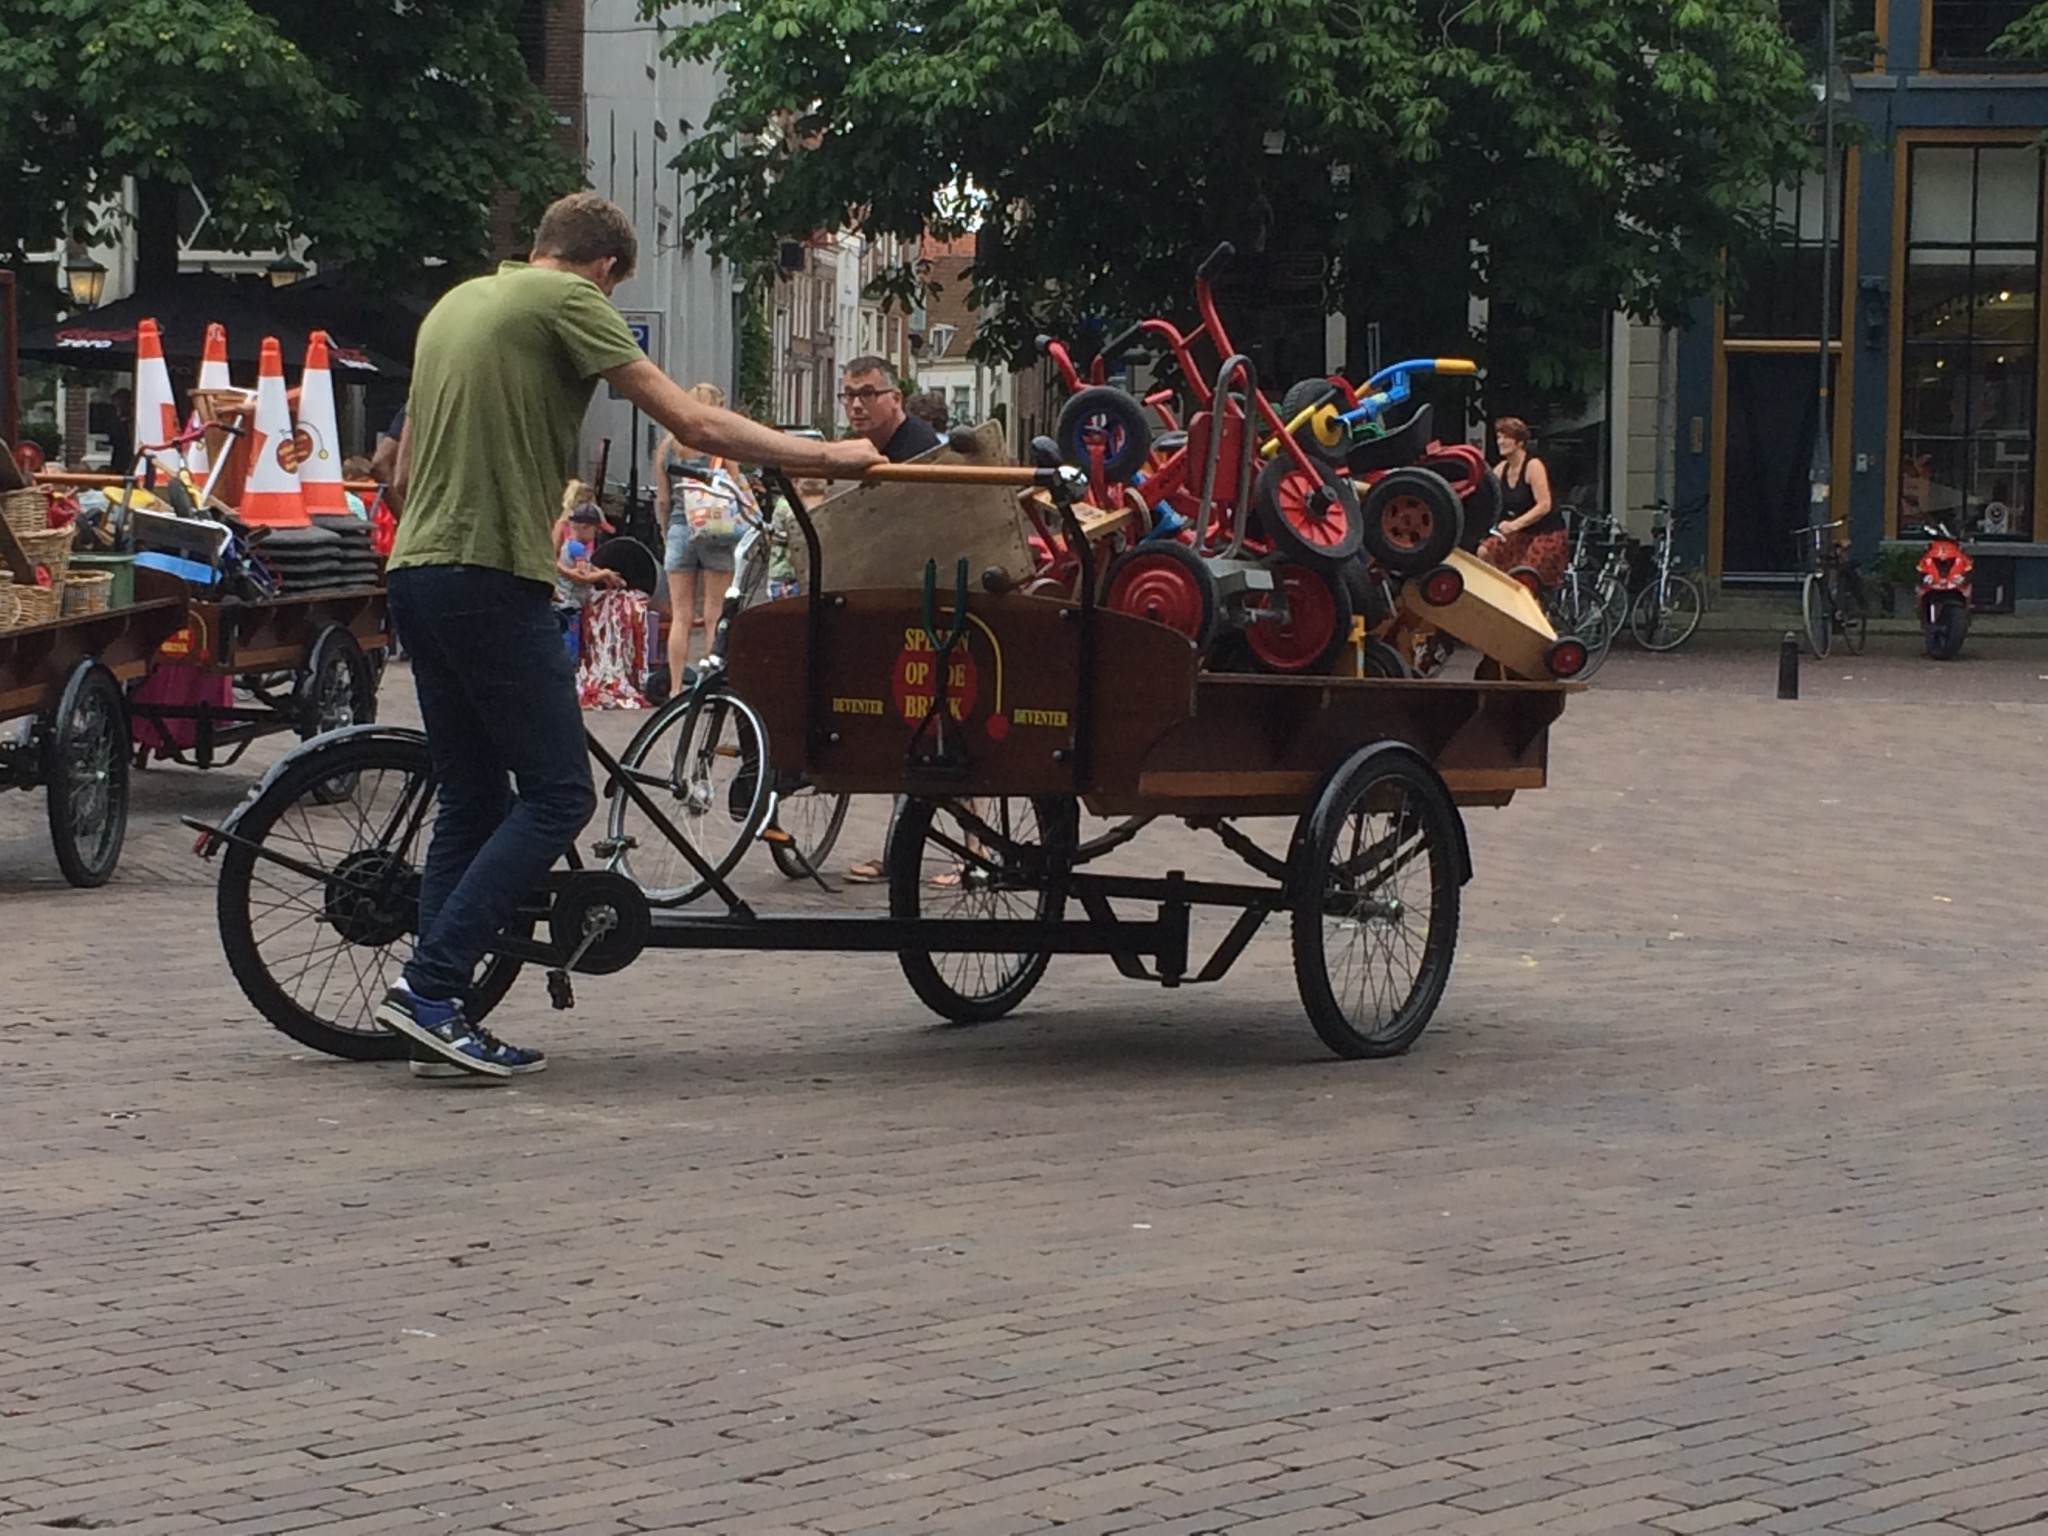 Traditional dutch toys delivered to the Deventer town square... via bicycle wagon, naturally.